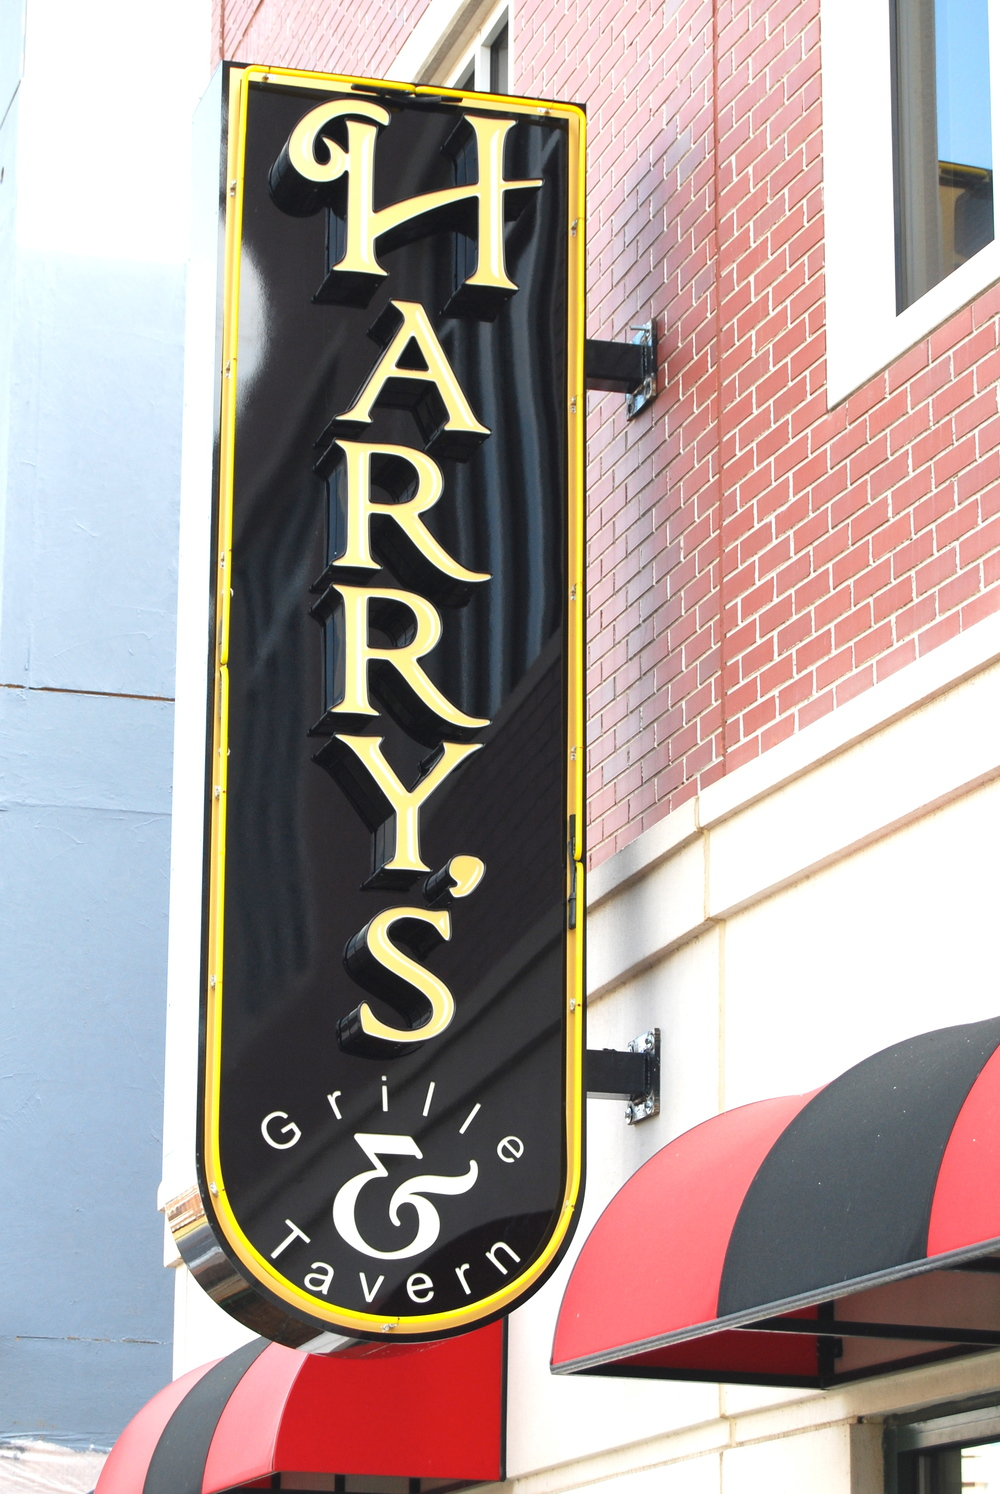 Harry's Grill and Tavern  is located amidst the vibrant Town of Ayrsley. Harry's specializes in personalized service and dining. TheBlack Label Burger, Harry's Crab Cakes,and LobsterMac-N'-Cheese are customer favoritesalong with local brews from Harry's North Carolina craft beer menu.The food, drink, and quality service Harry's provides allembody its promise of quality and a memorabledining experience.  Located at 2127 Ayrsley Town BoulevardSuite 103, Charlotte, NC 28273